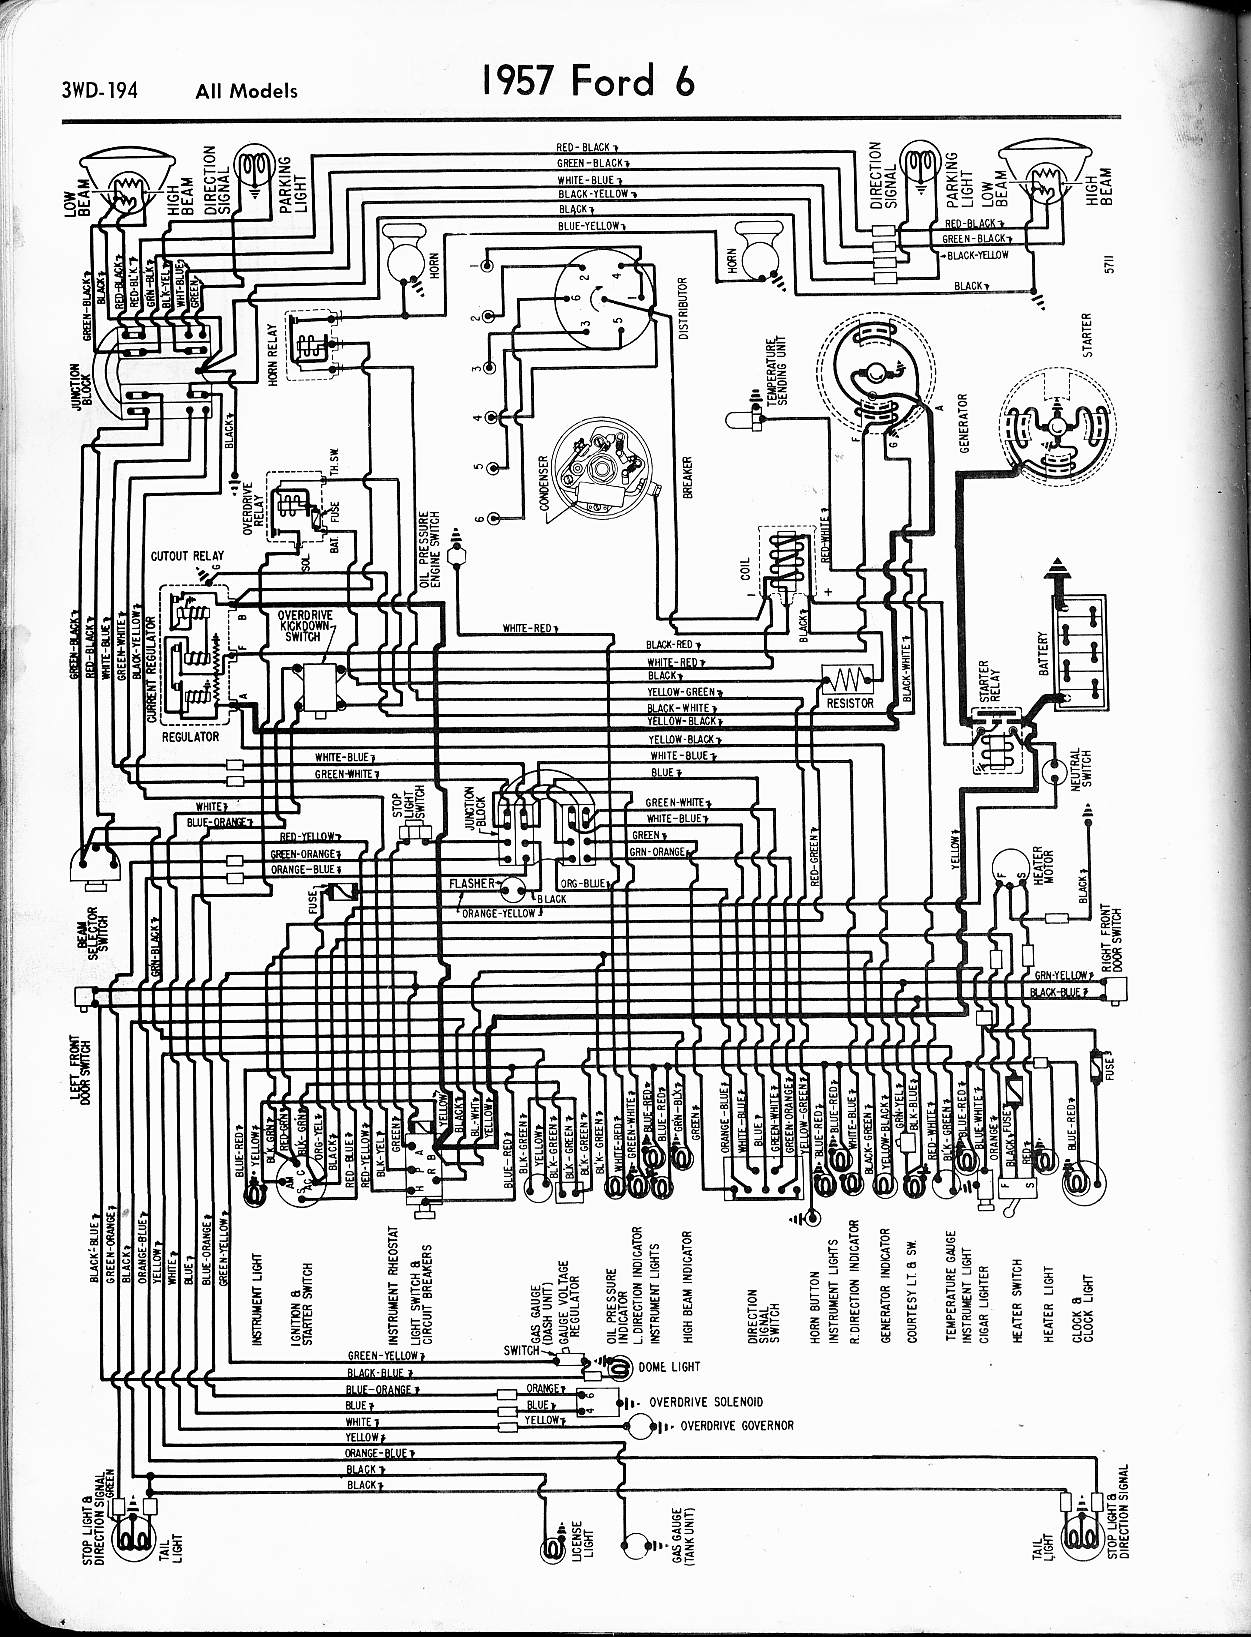 MWire5765 194 57 65 ford wiring diagrams Ford Schematics at bayanpartner.co